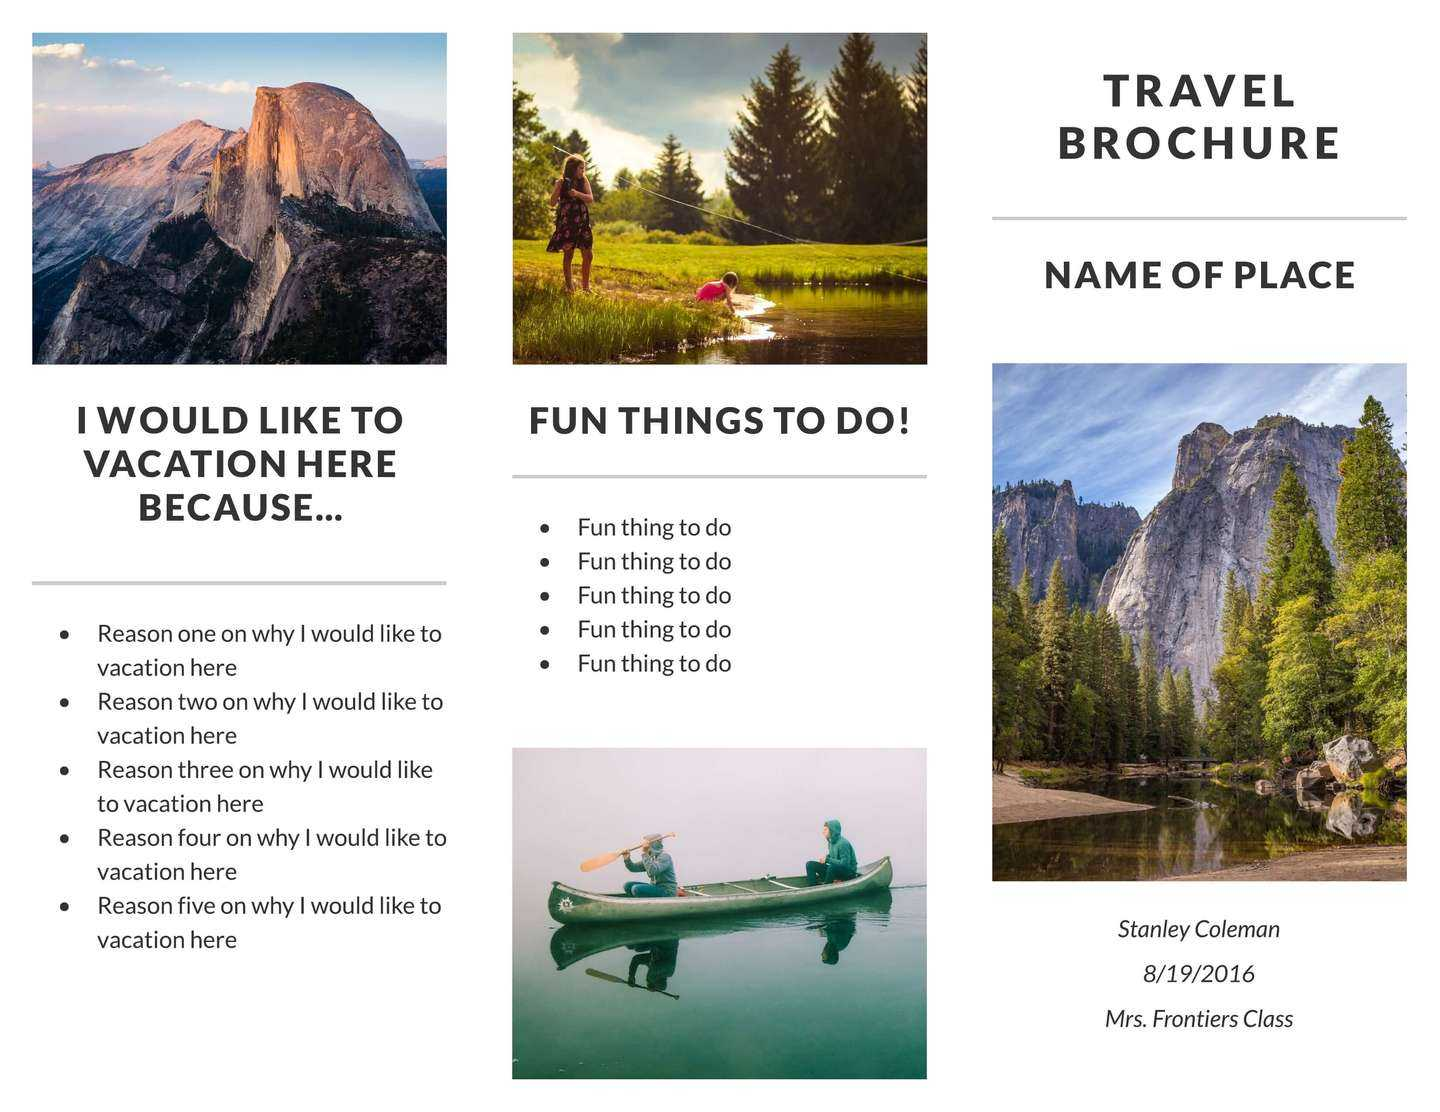 Free Travel Brochure Templates & Examples [8 Free Templates] Pertaining To Island Brochure Template